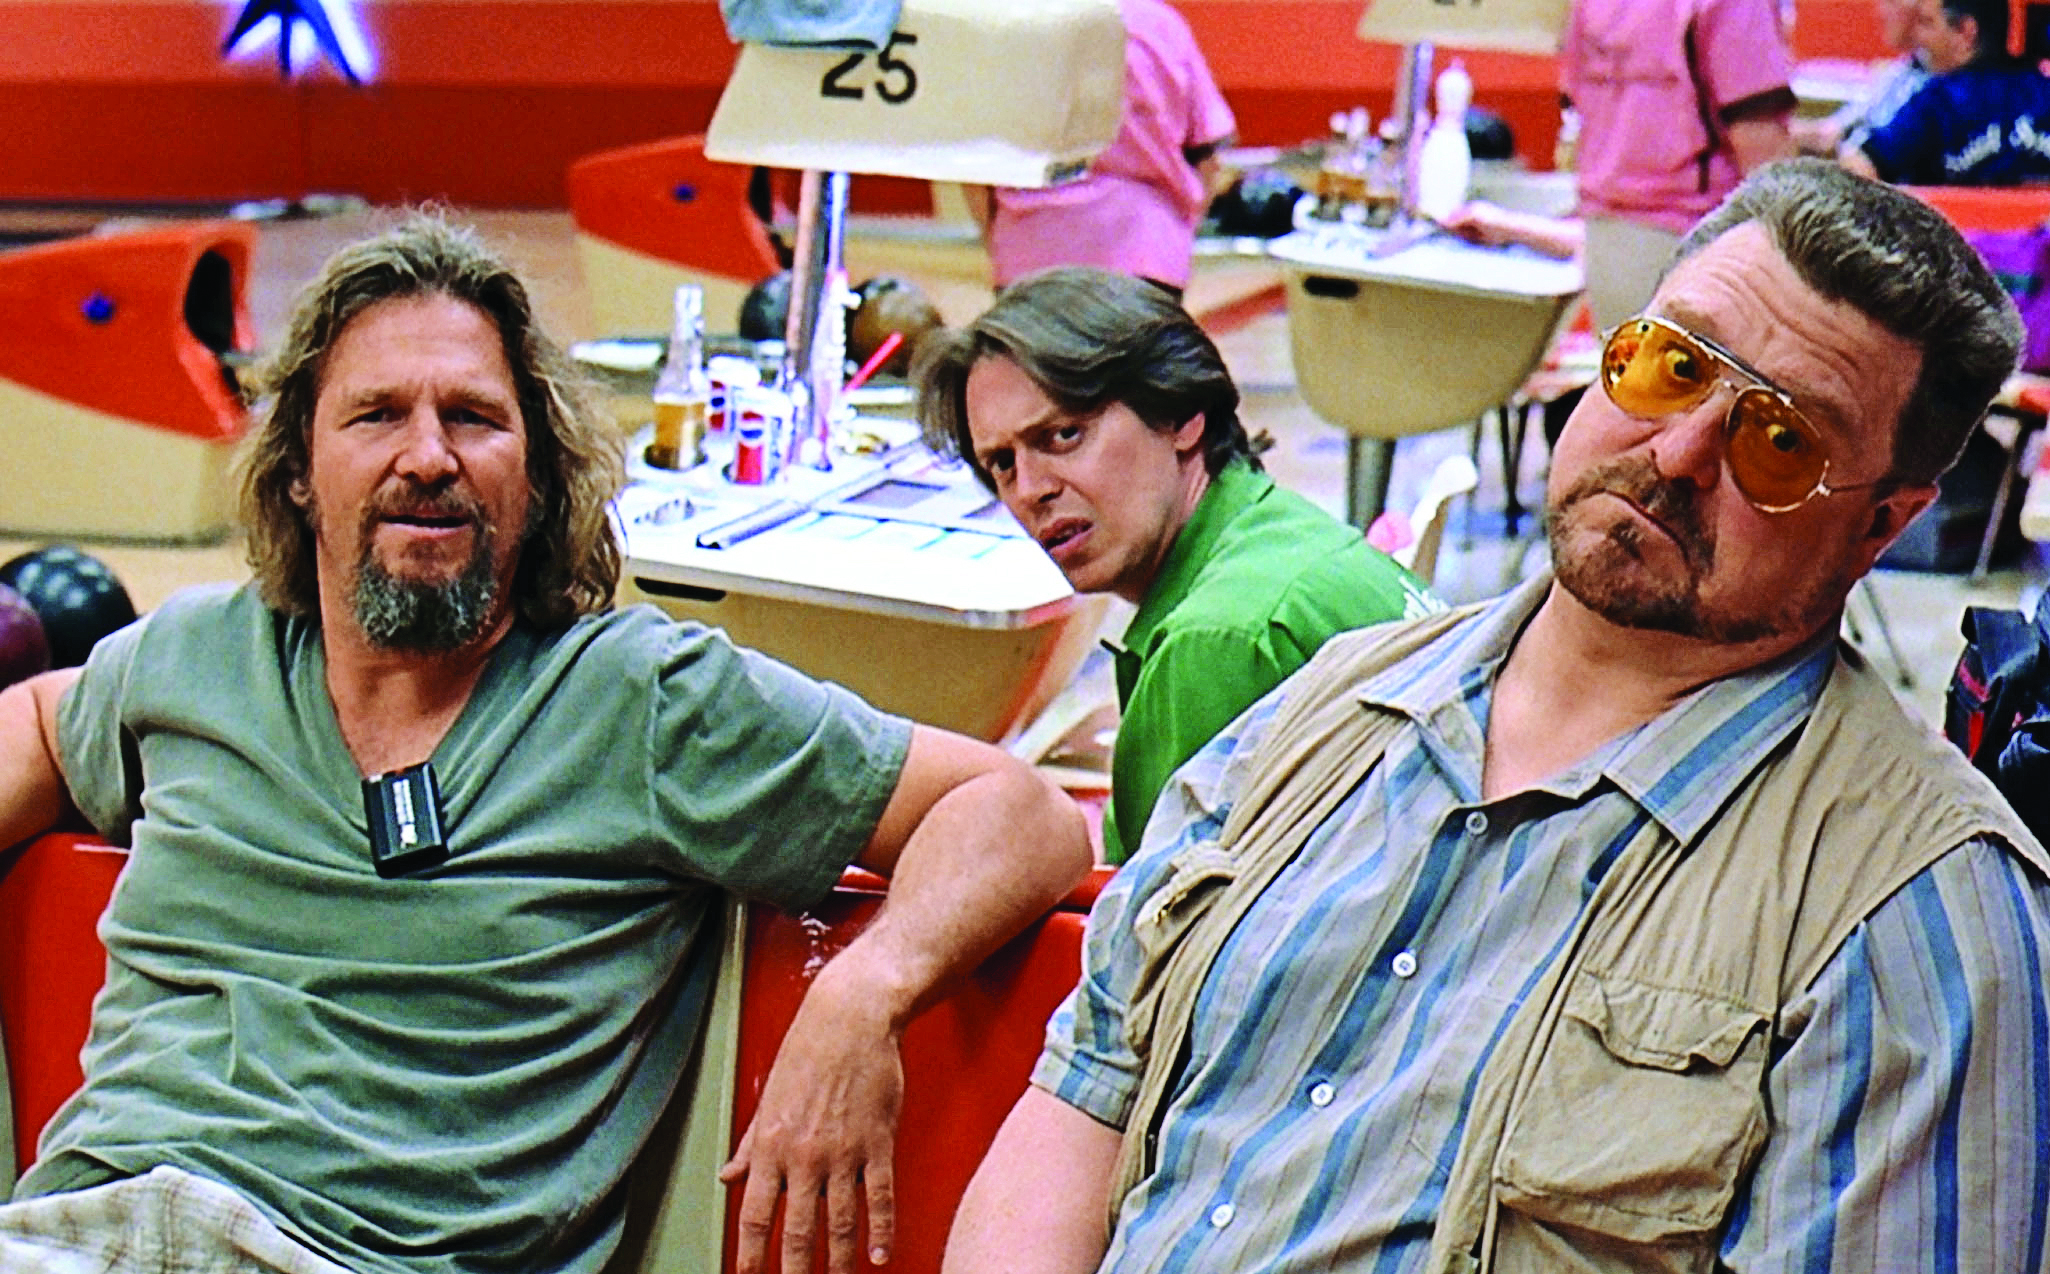 A huge Coen brothers retrospective is coming to Film Forum